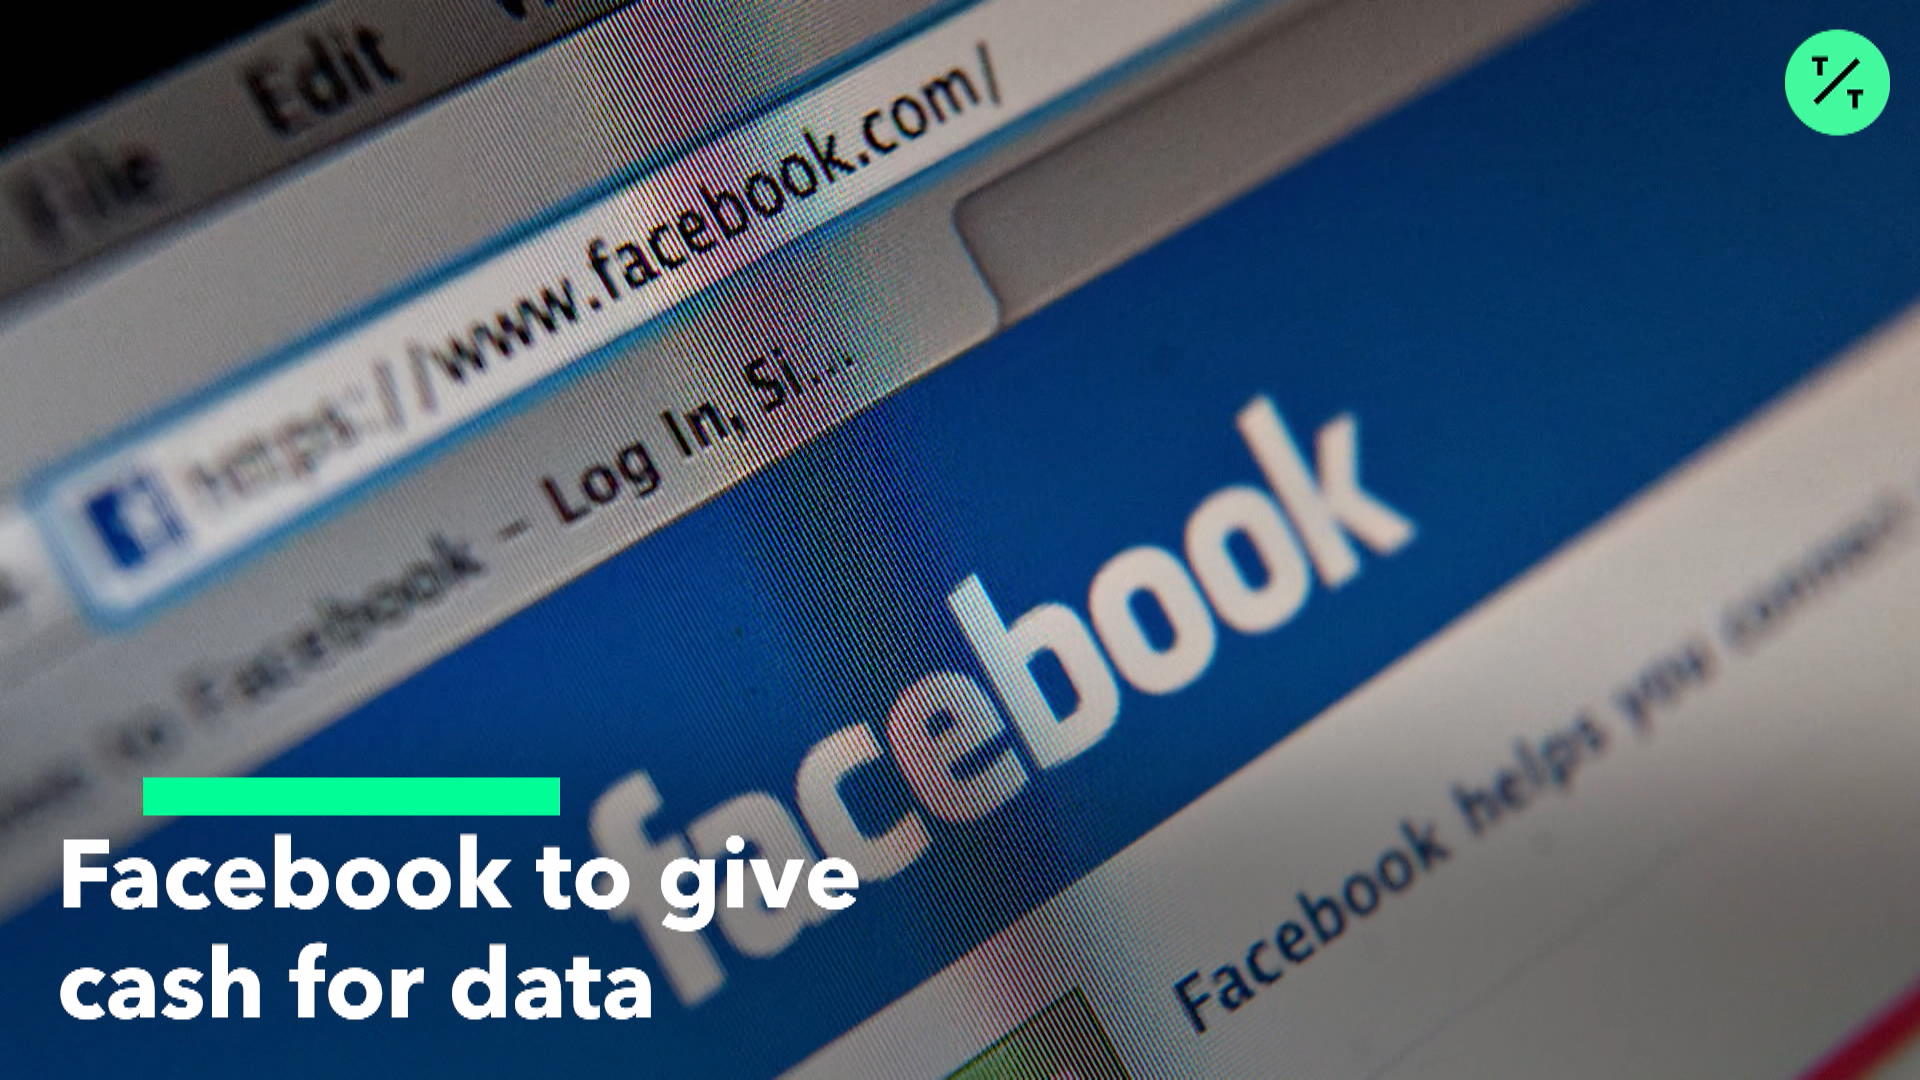 Facebook To Give Cash For Data